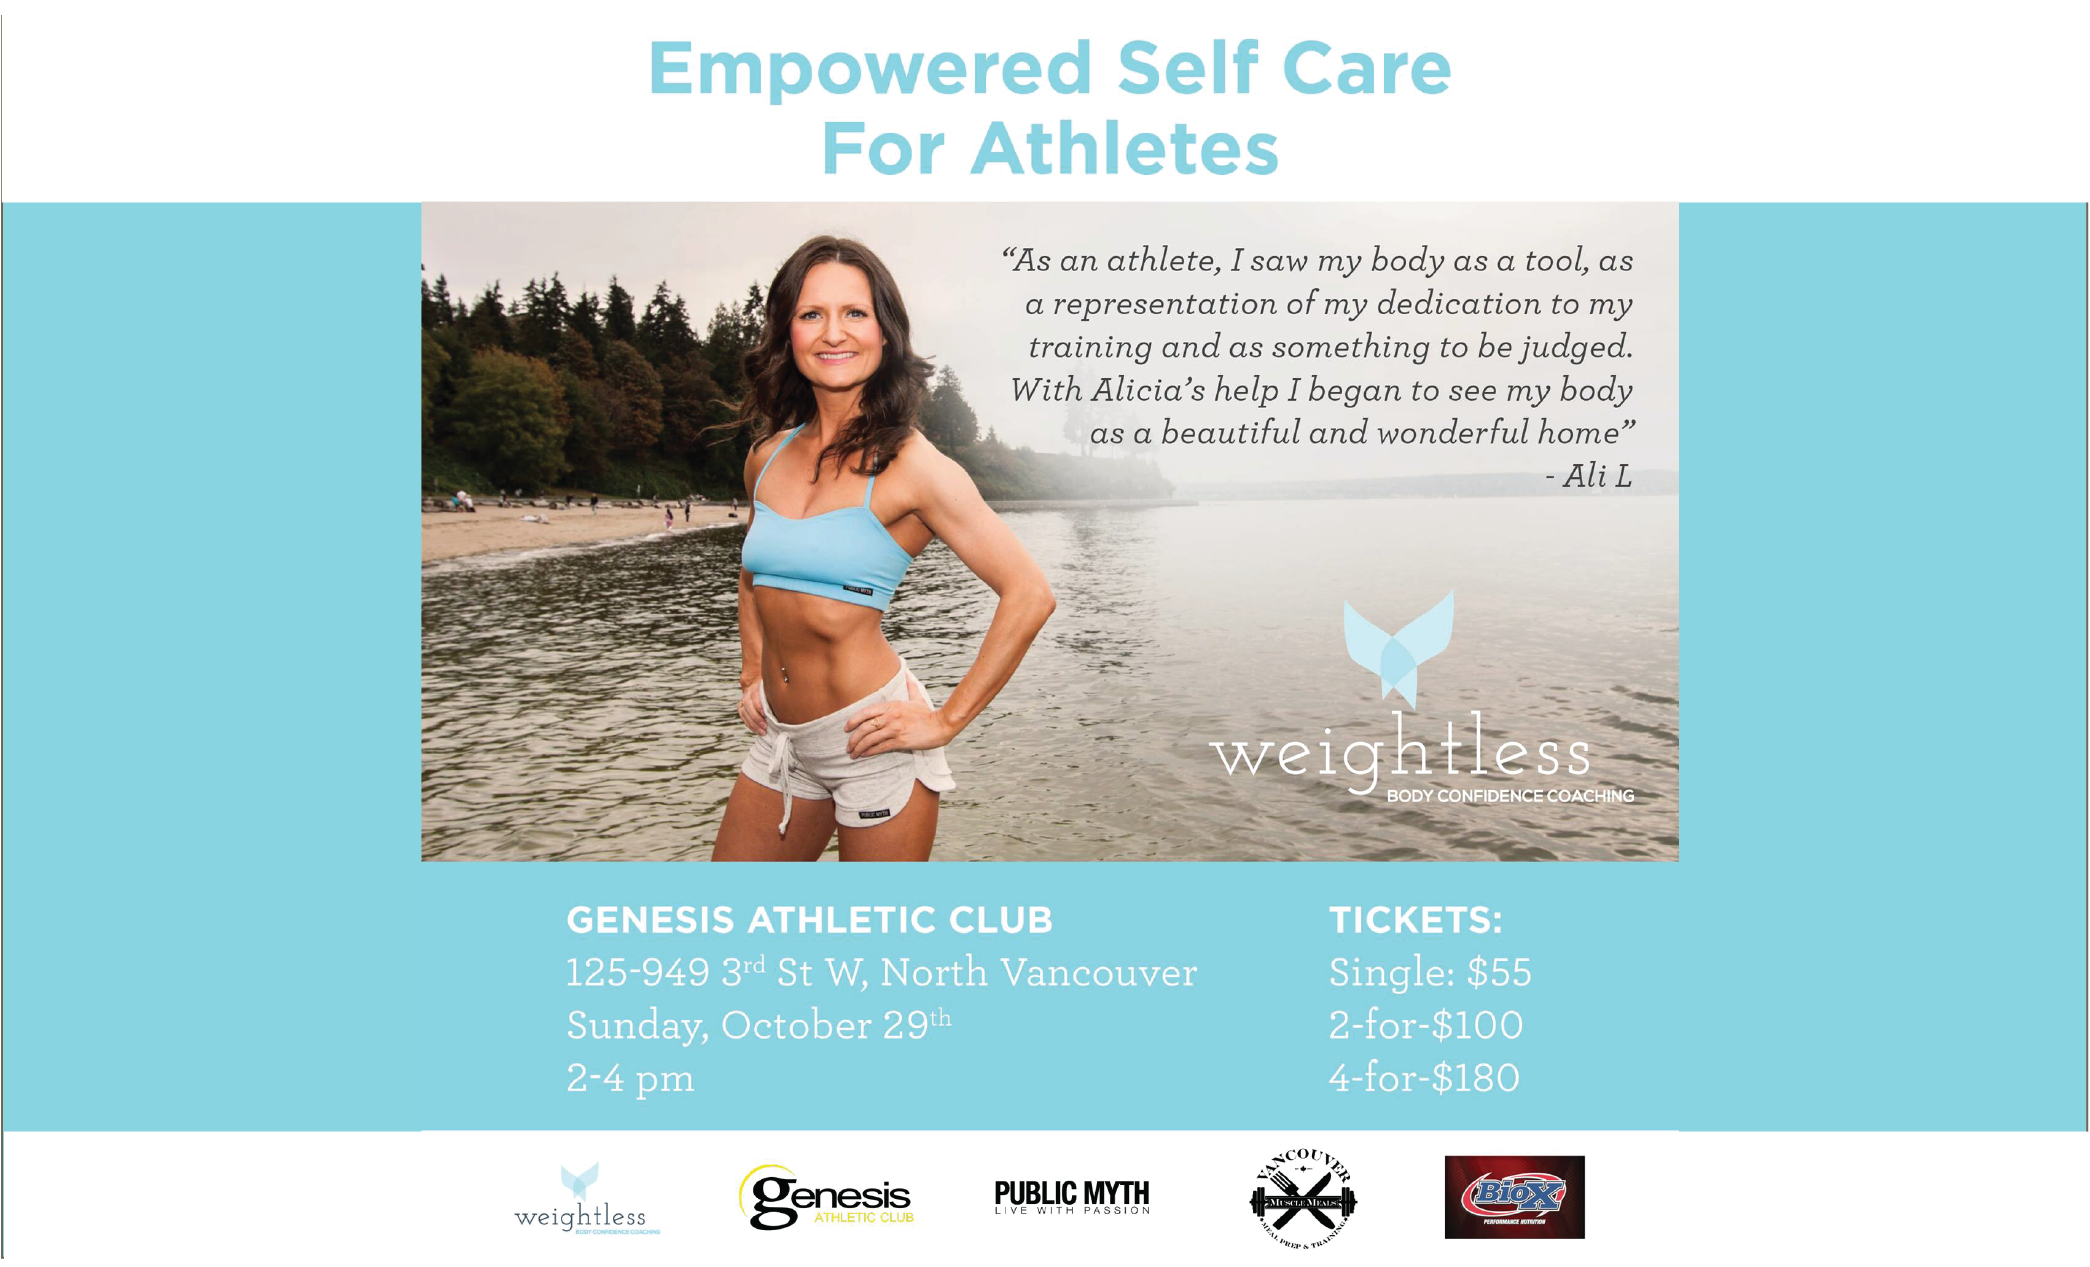 Empowered Self Care For Athletes (Genesis Athletic Club)